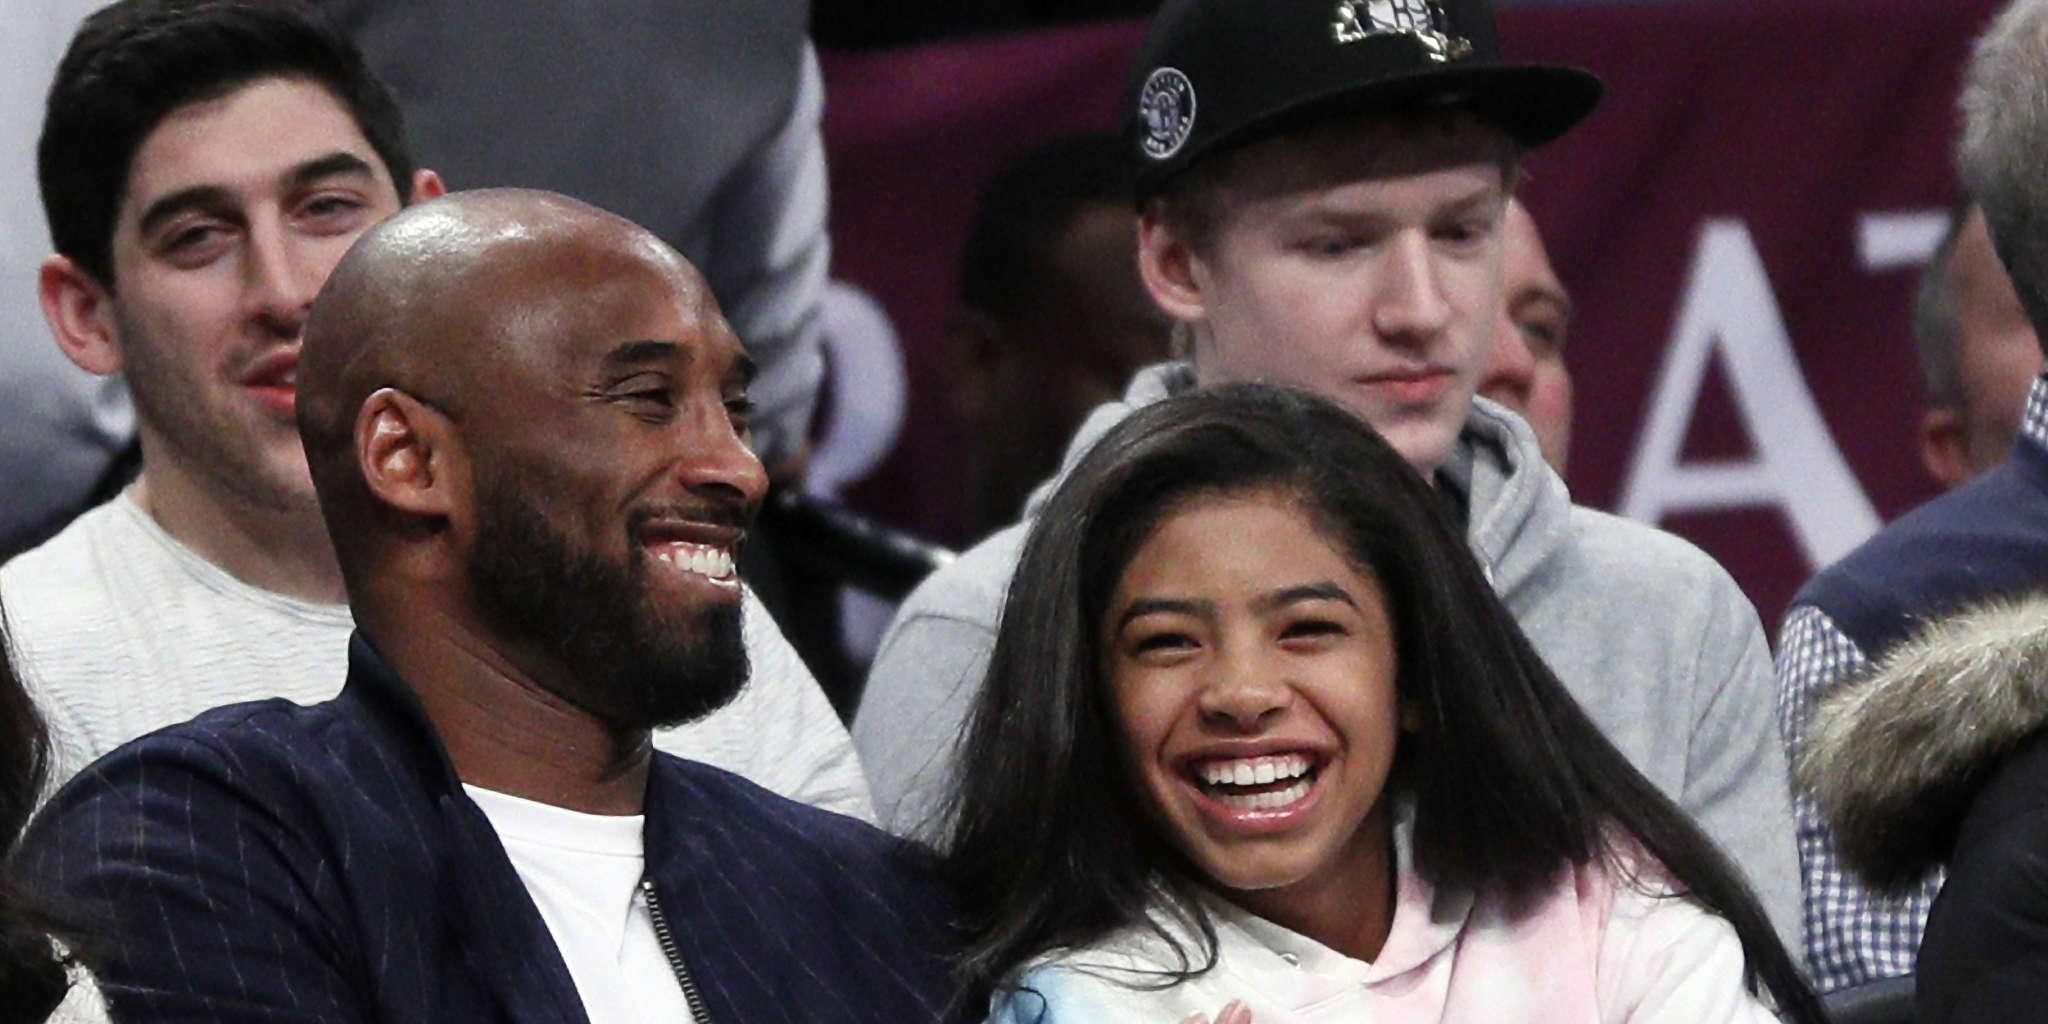 Kobe Bryant And Gianna: A Public Memorial To Be Held At The Staples Center On February 24